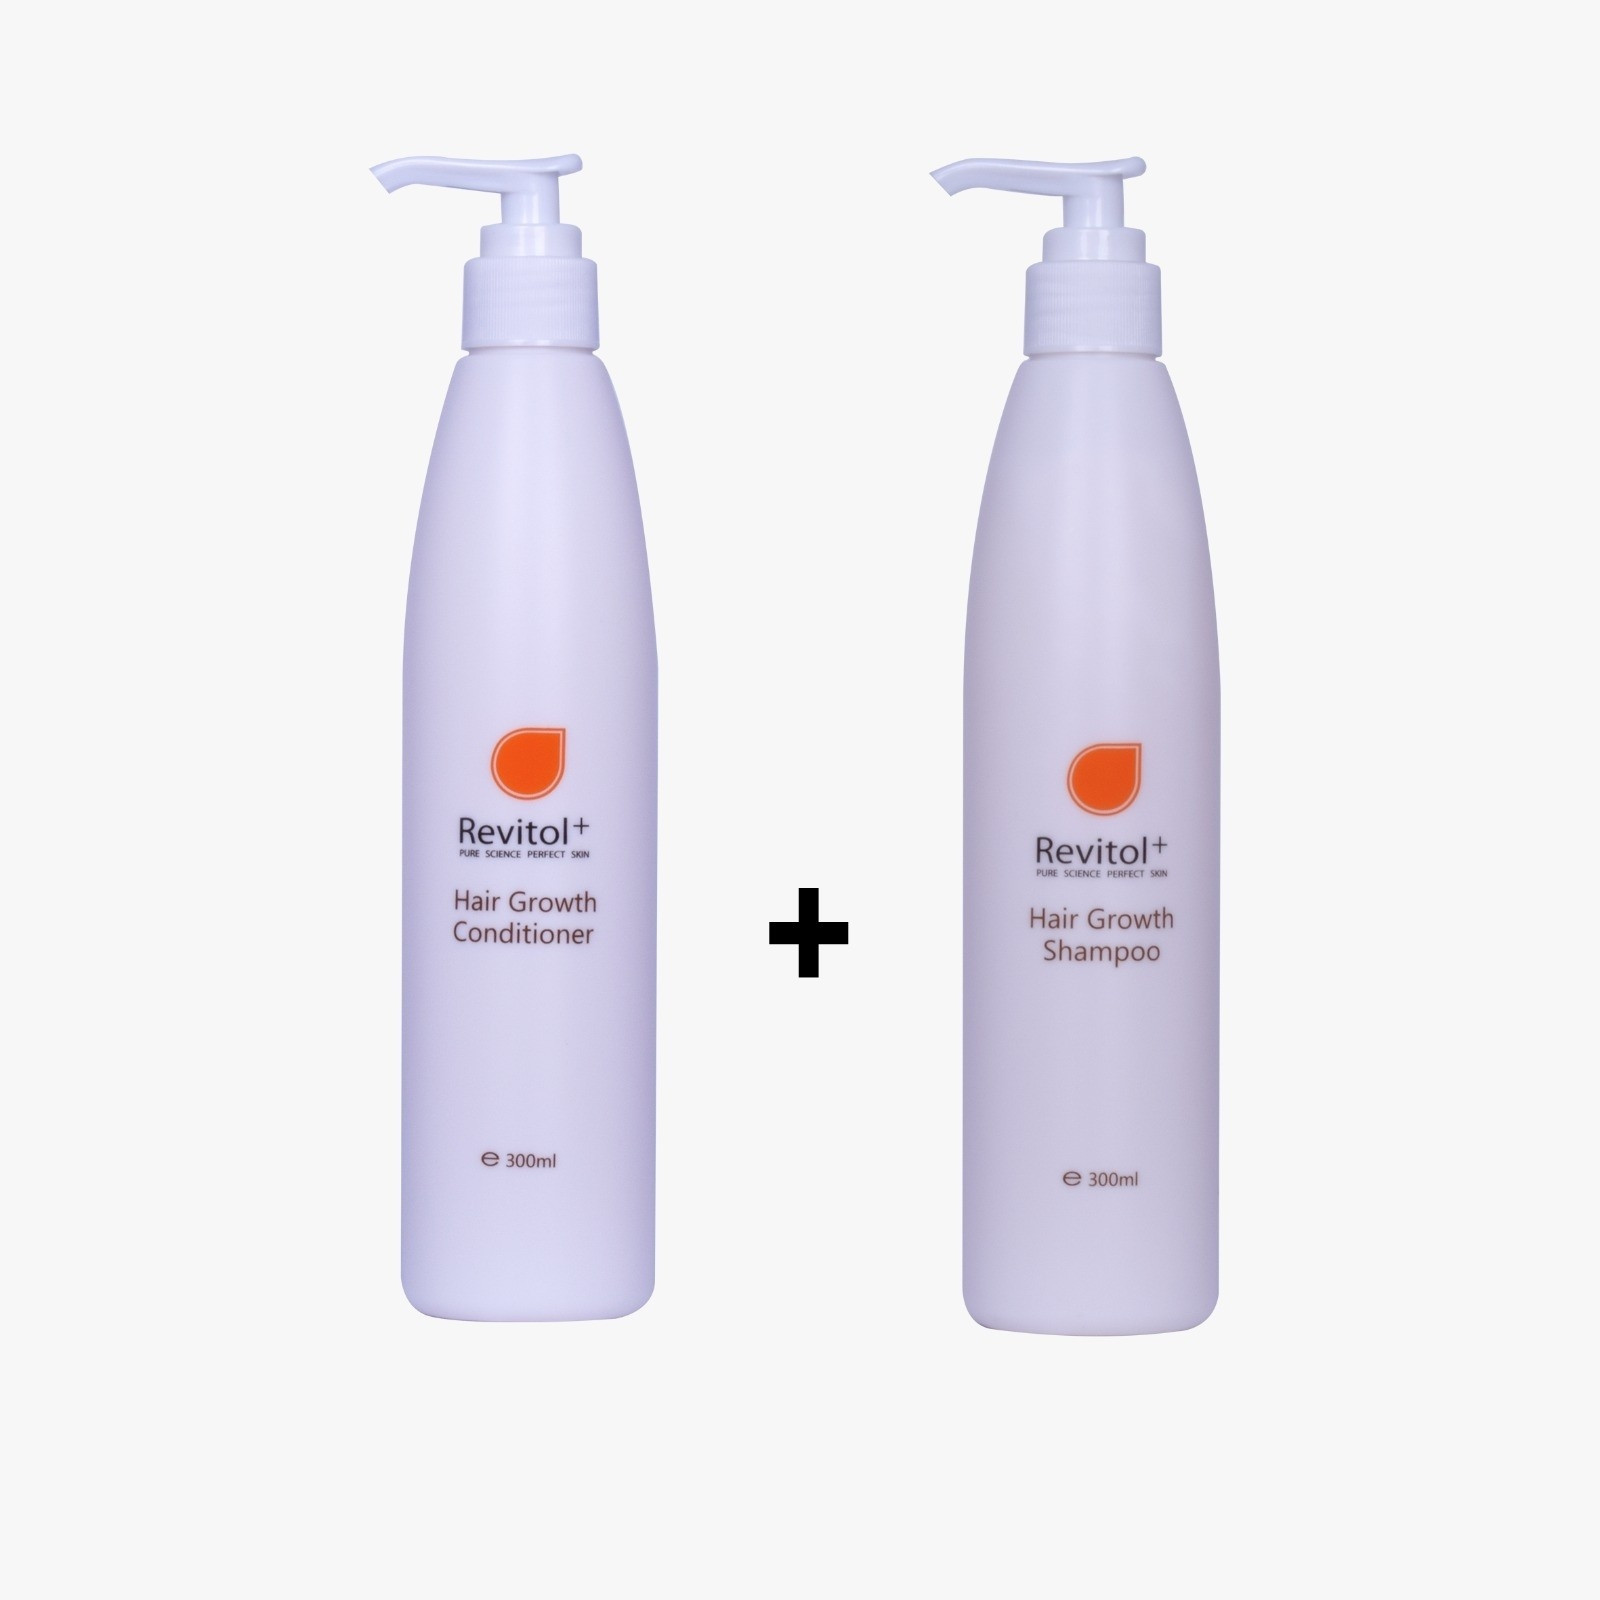 Revitol+ Hair Growth Shampoo and Conditioner Offer